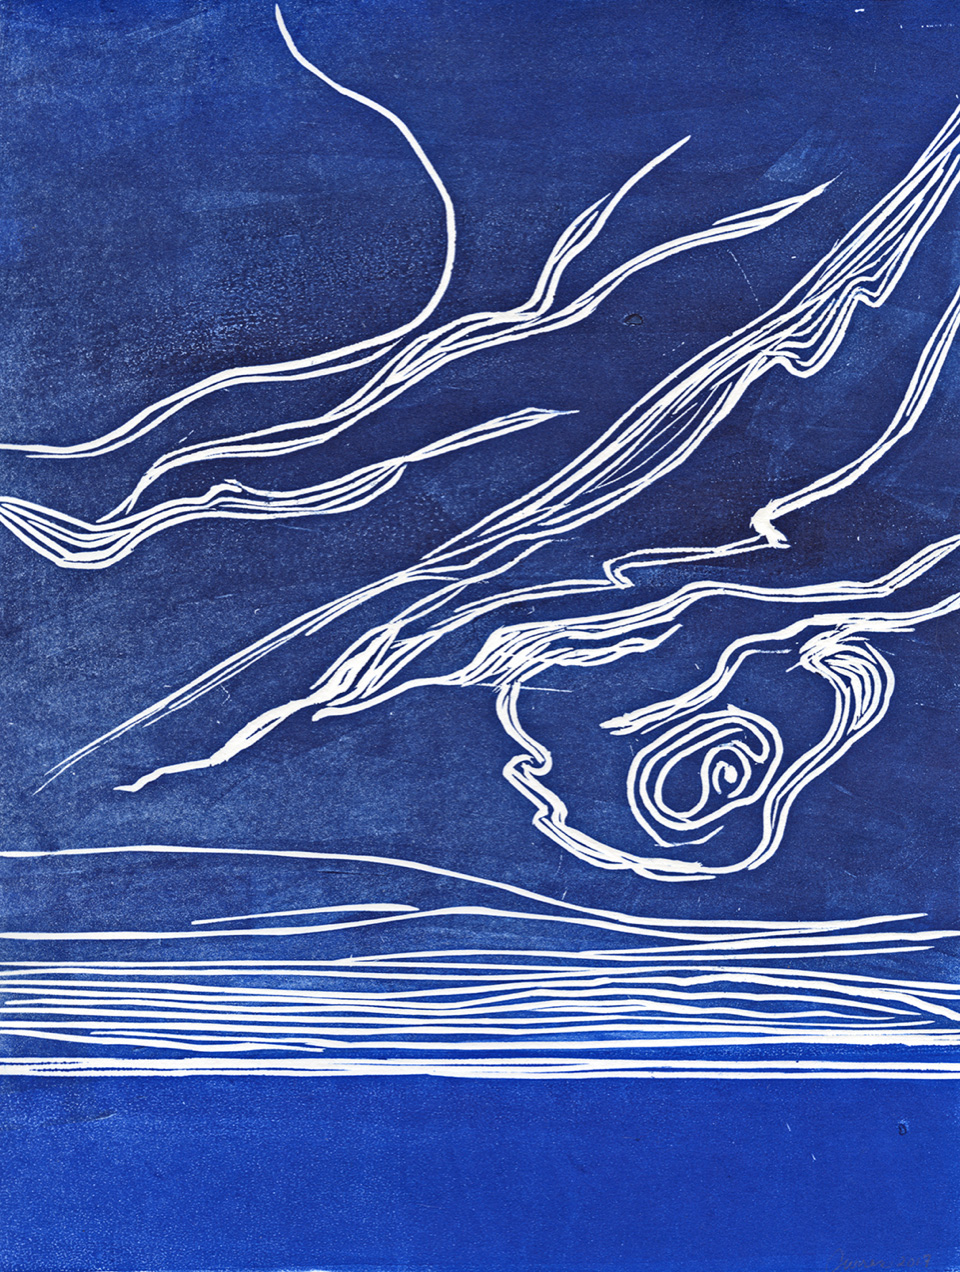 Cirrus Wisps . Sintra-carved print on American Printmaking Paper. 9 in x 12 in. 2017